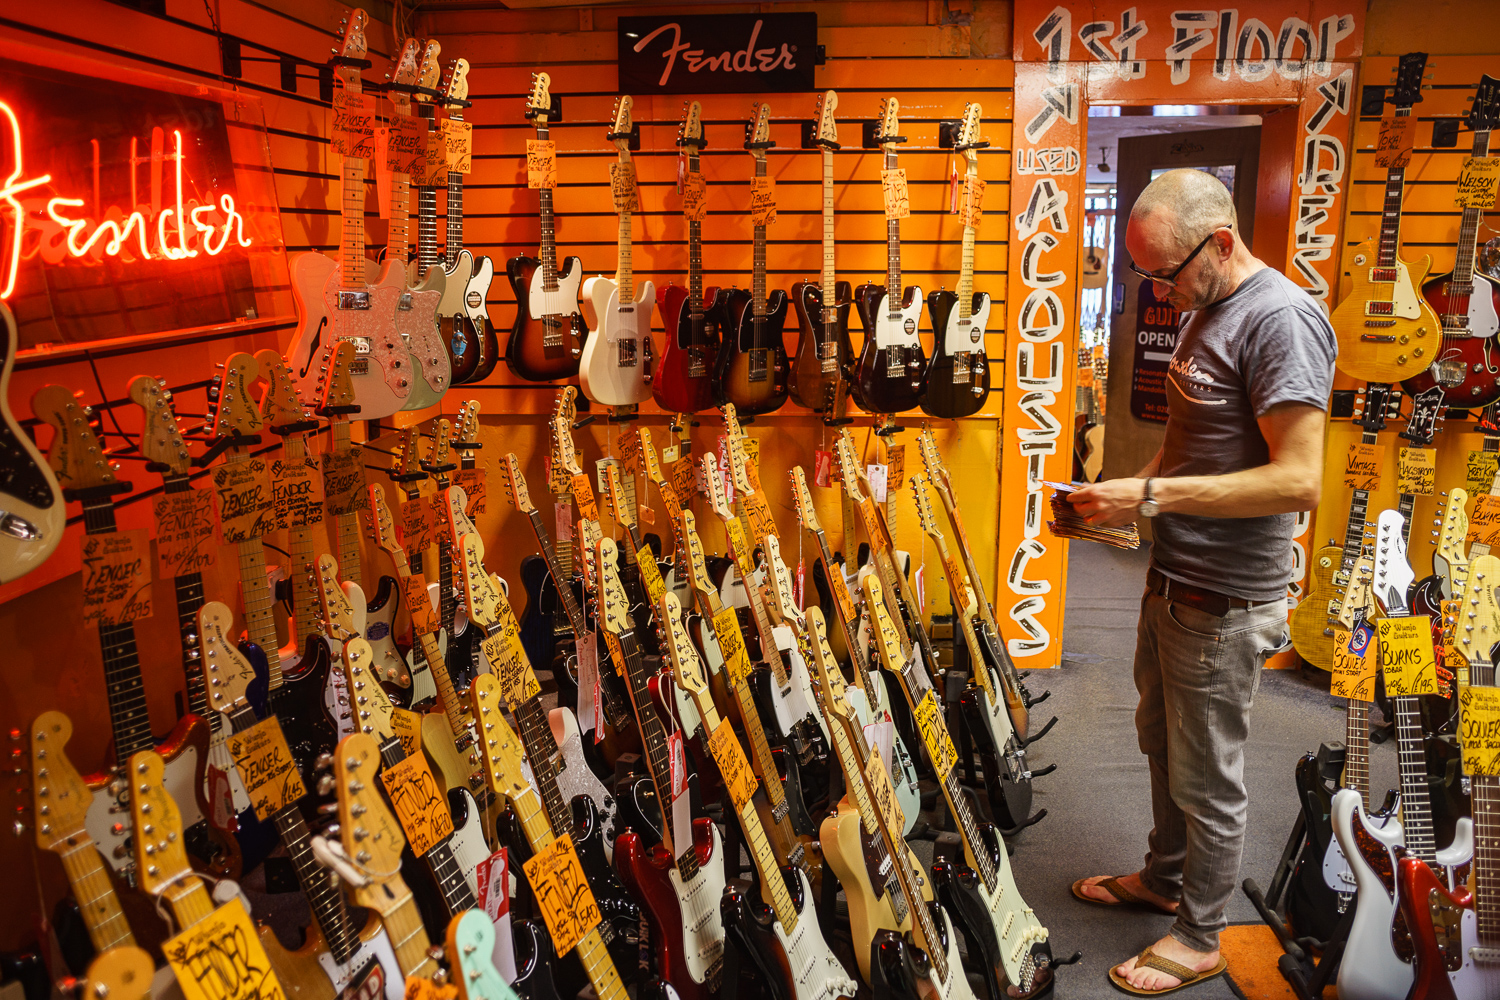 Photo: Brian Rowe checks Fender prices in Wunjo Guitars